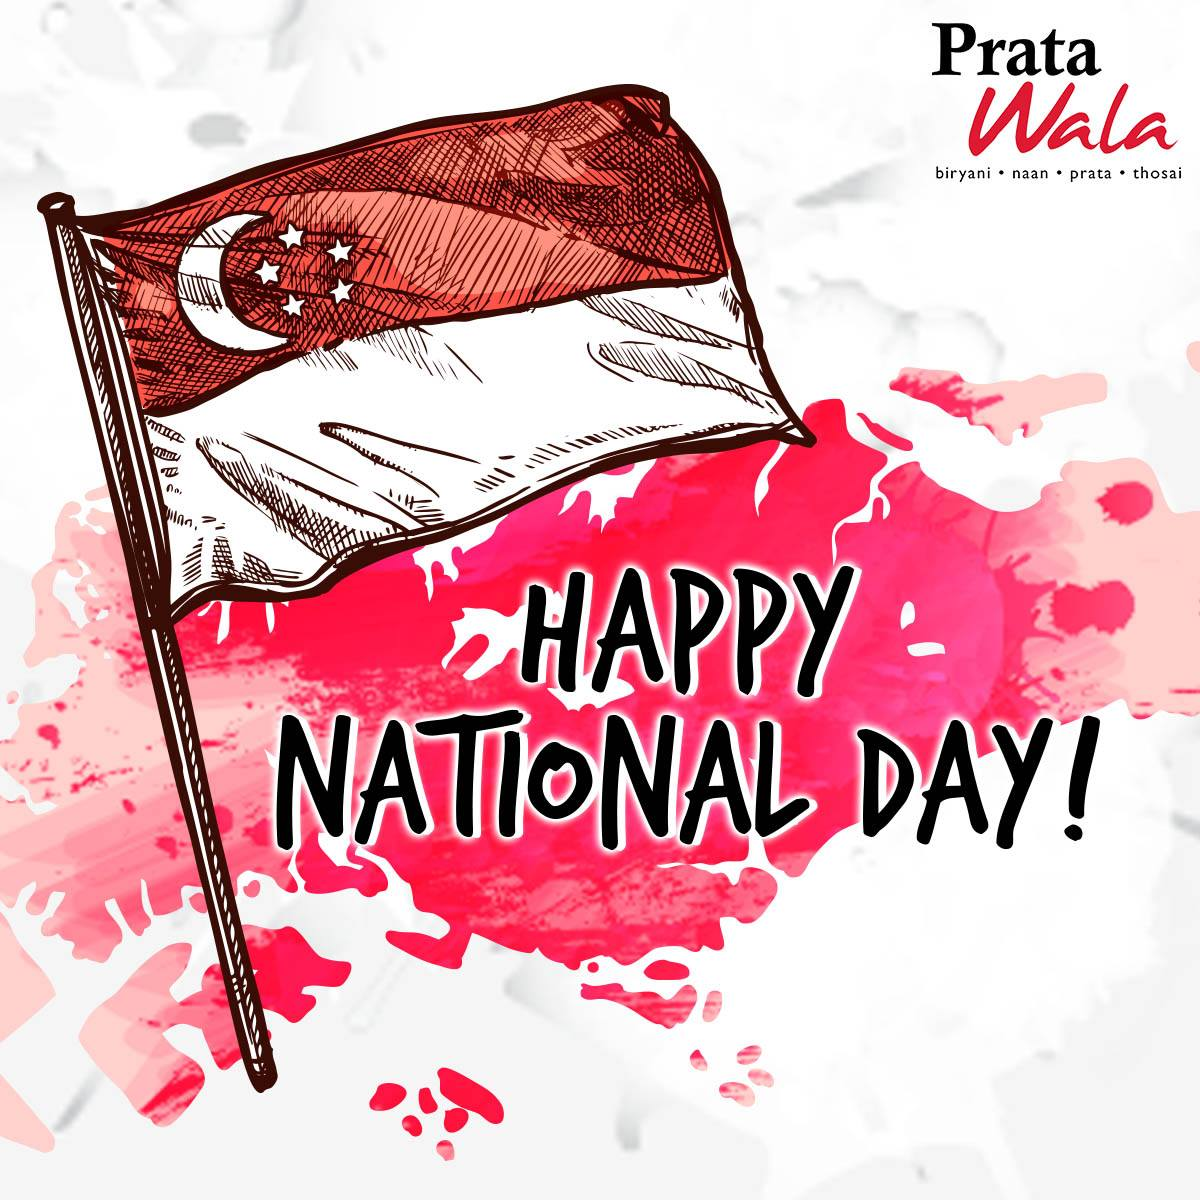 Prata Wala Singapore National Day $5.40 Side Dish Promotion ends 31 Aug 2019 | Why Not Deals & Promotions